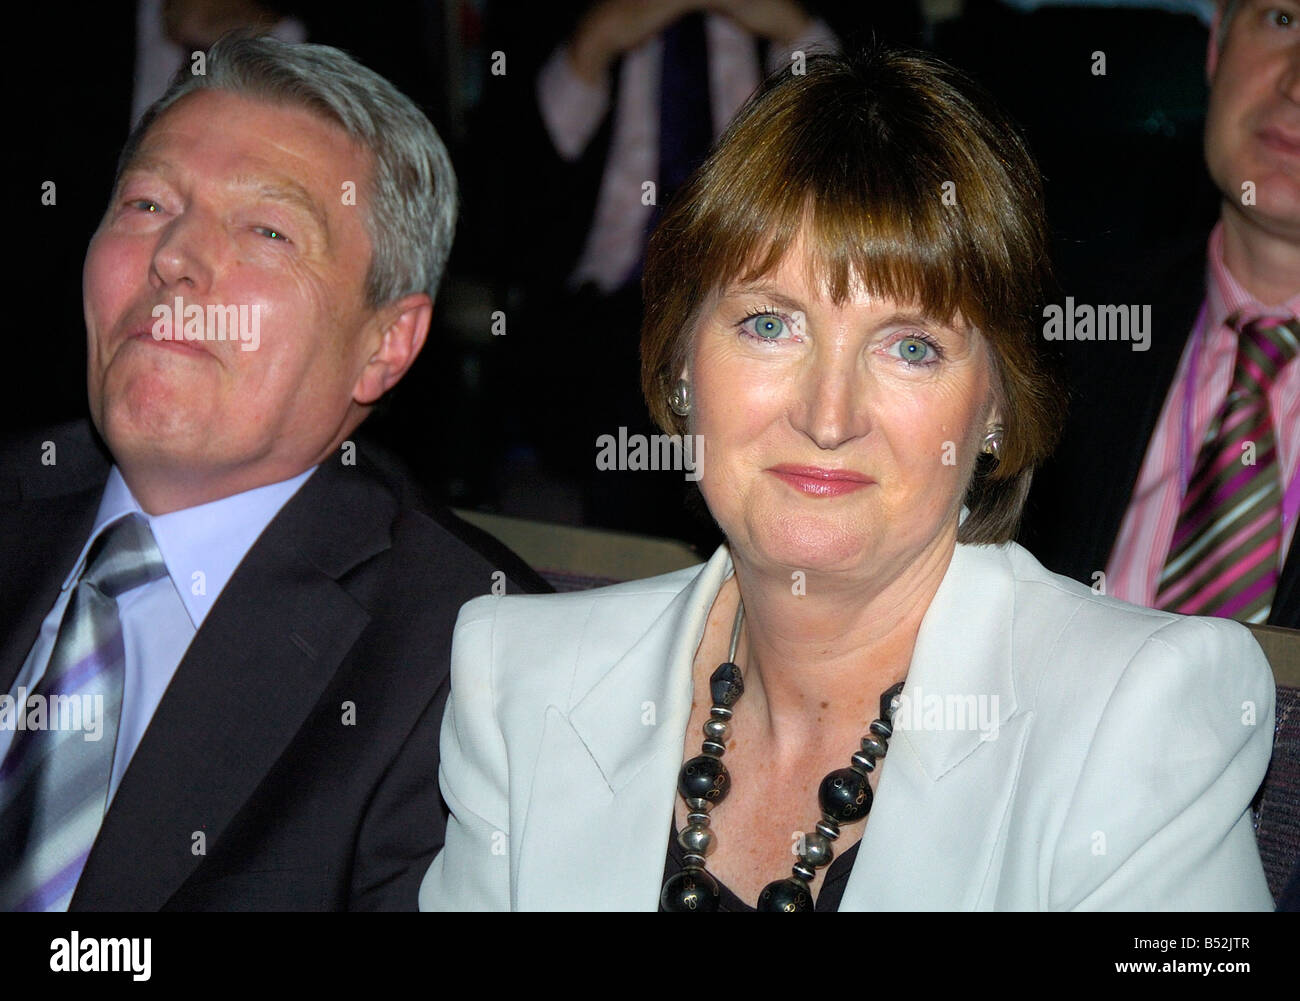 Labour Conference in Manchester - Harriet Harman wins the vote for Deputy Leader of the Labour Party with Alan Johnson - Stock Image